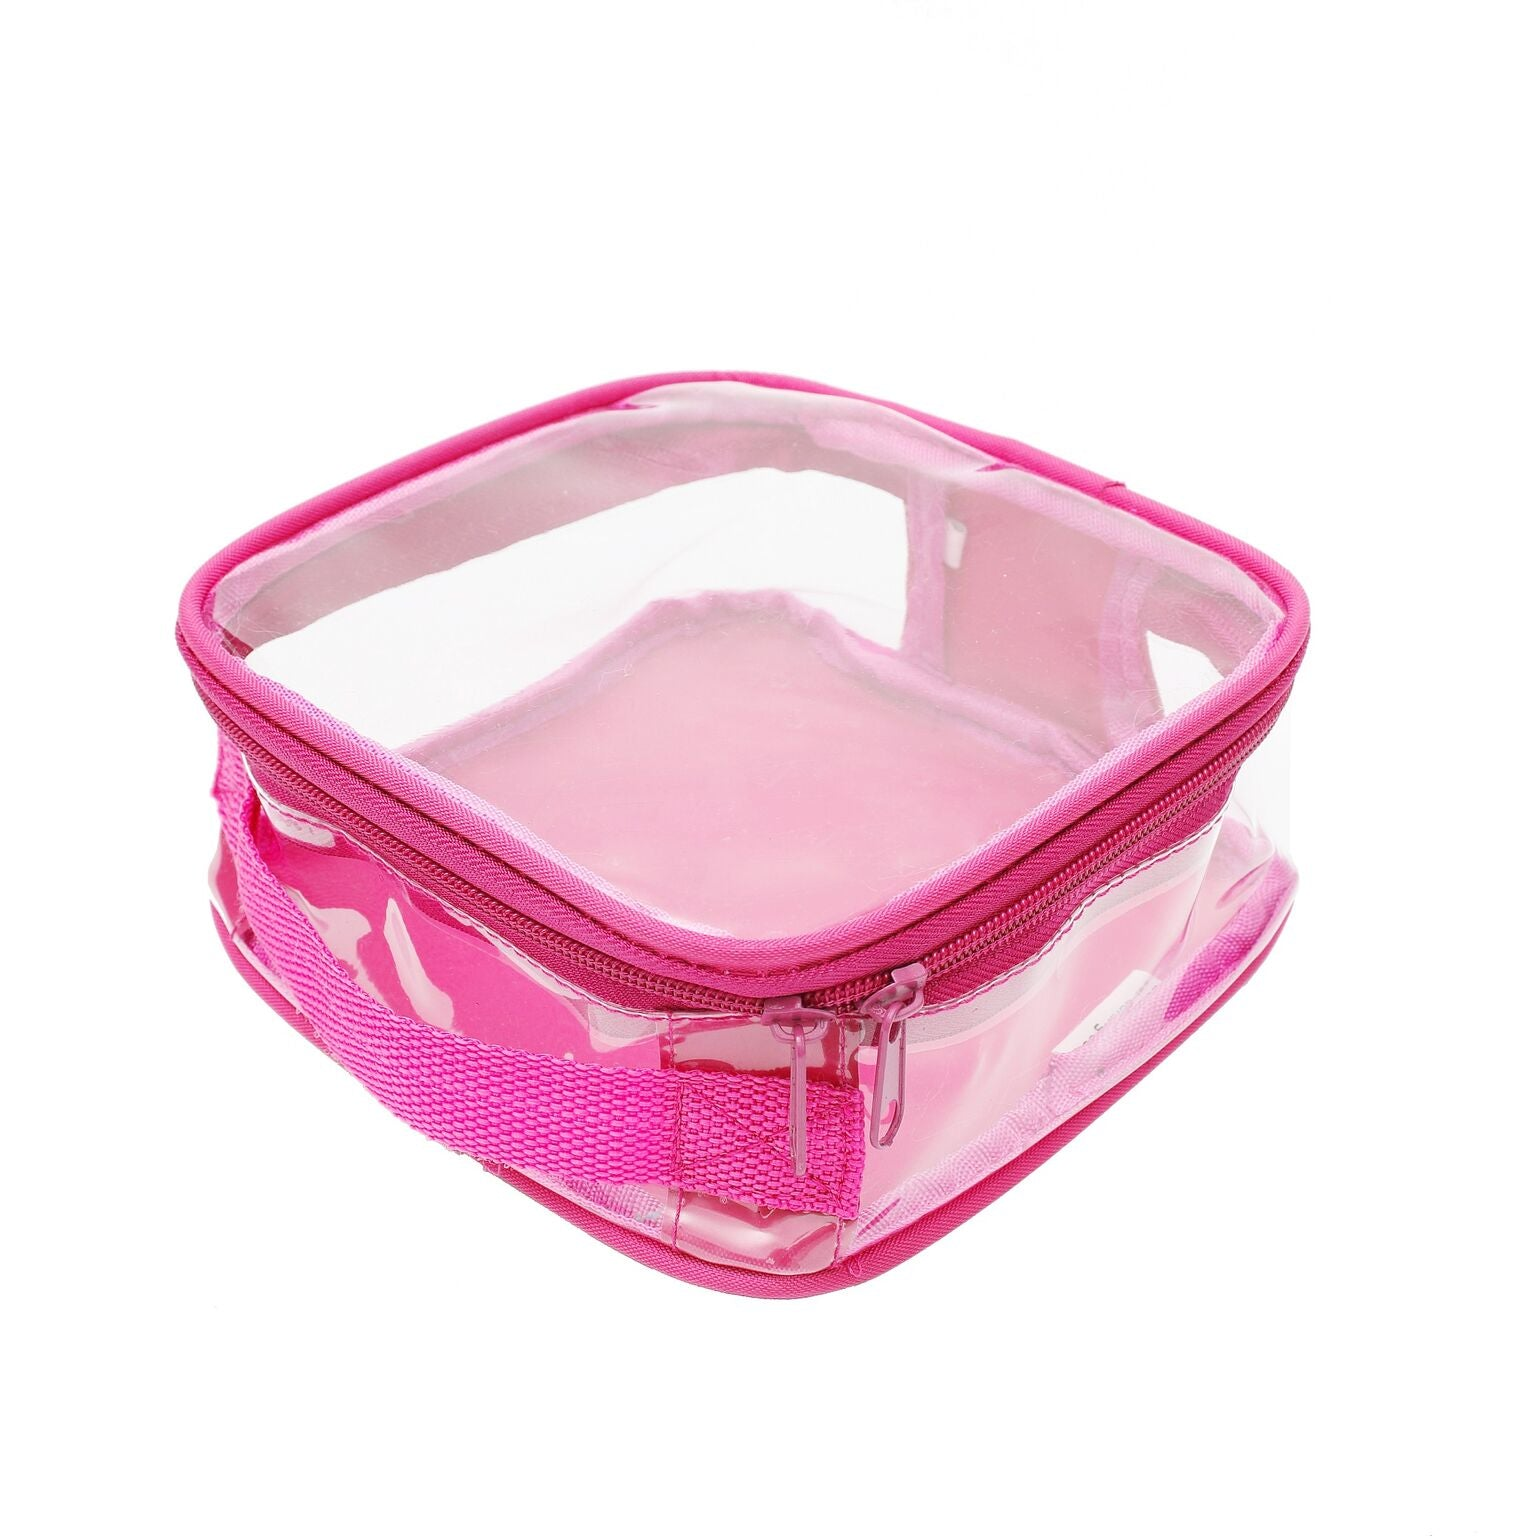 Pink packing cube in extra small